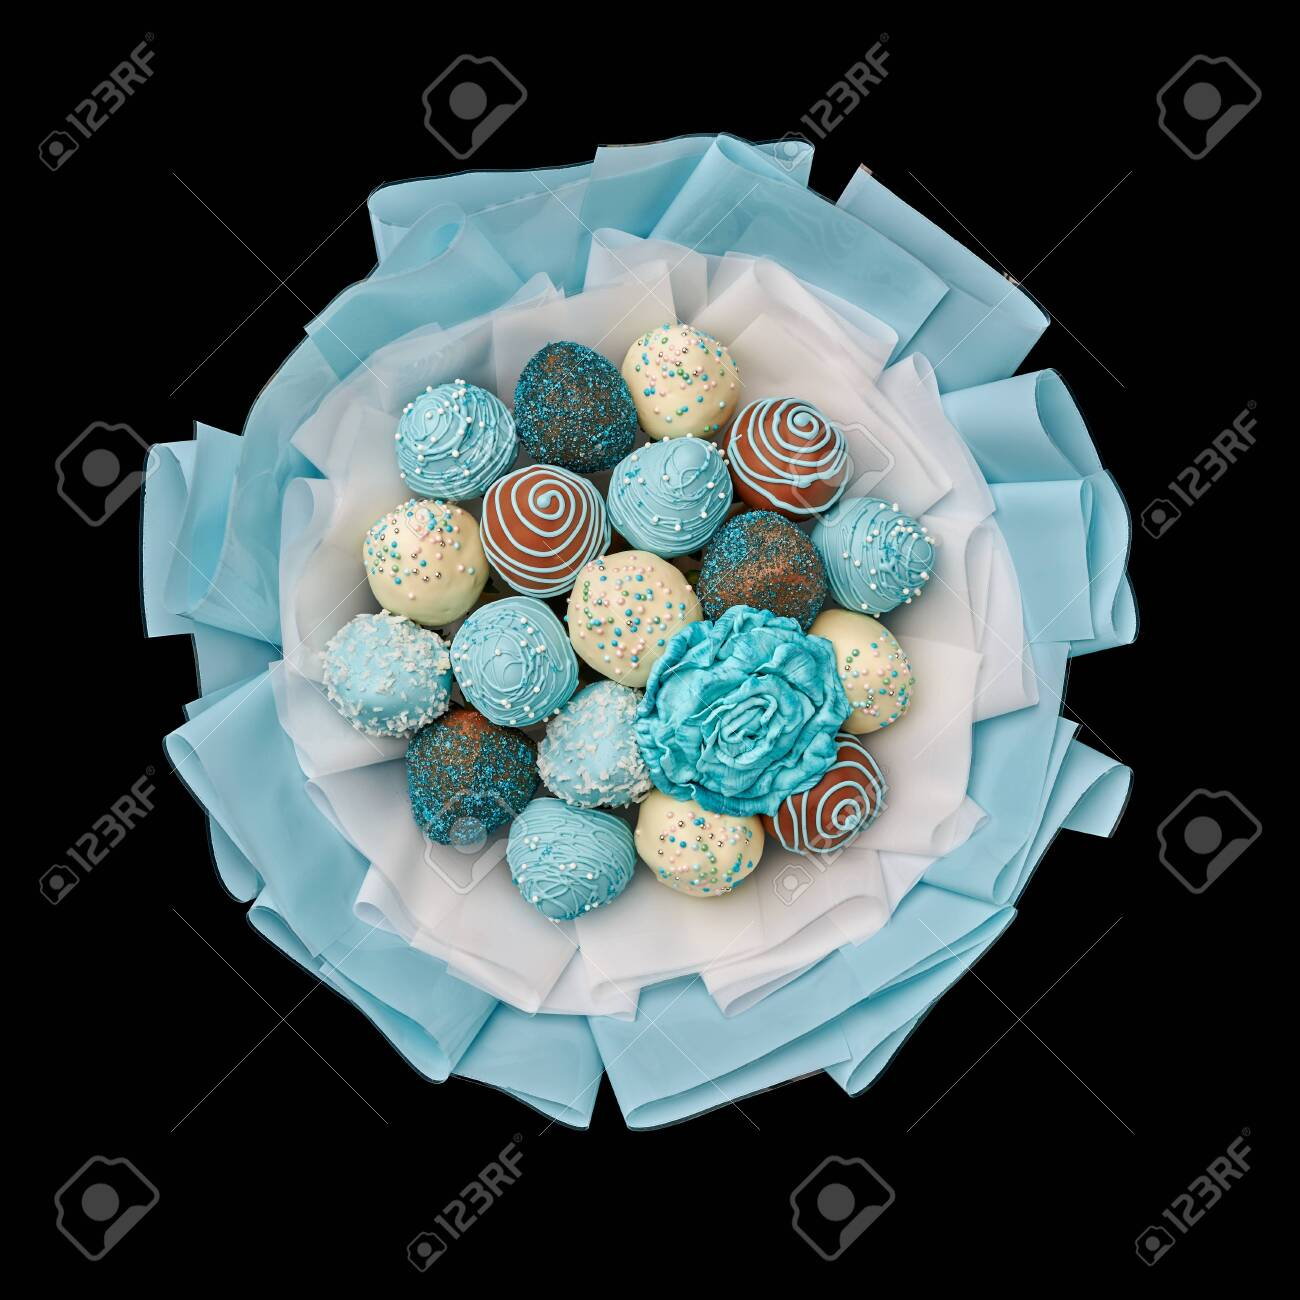 Bouquet Of Chocolate Covered Strawberries Stock Photo Picture And Royalty Free Image Image 130338975